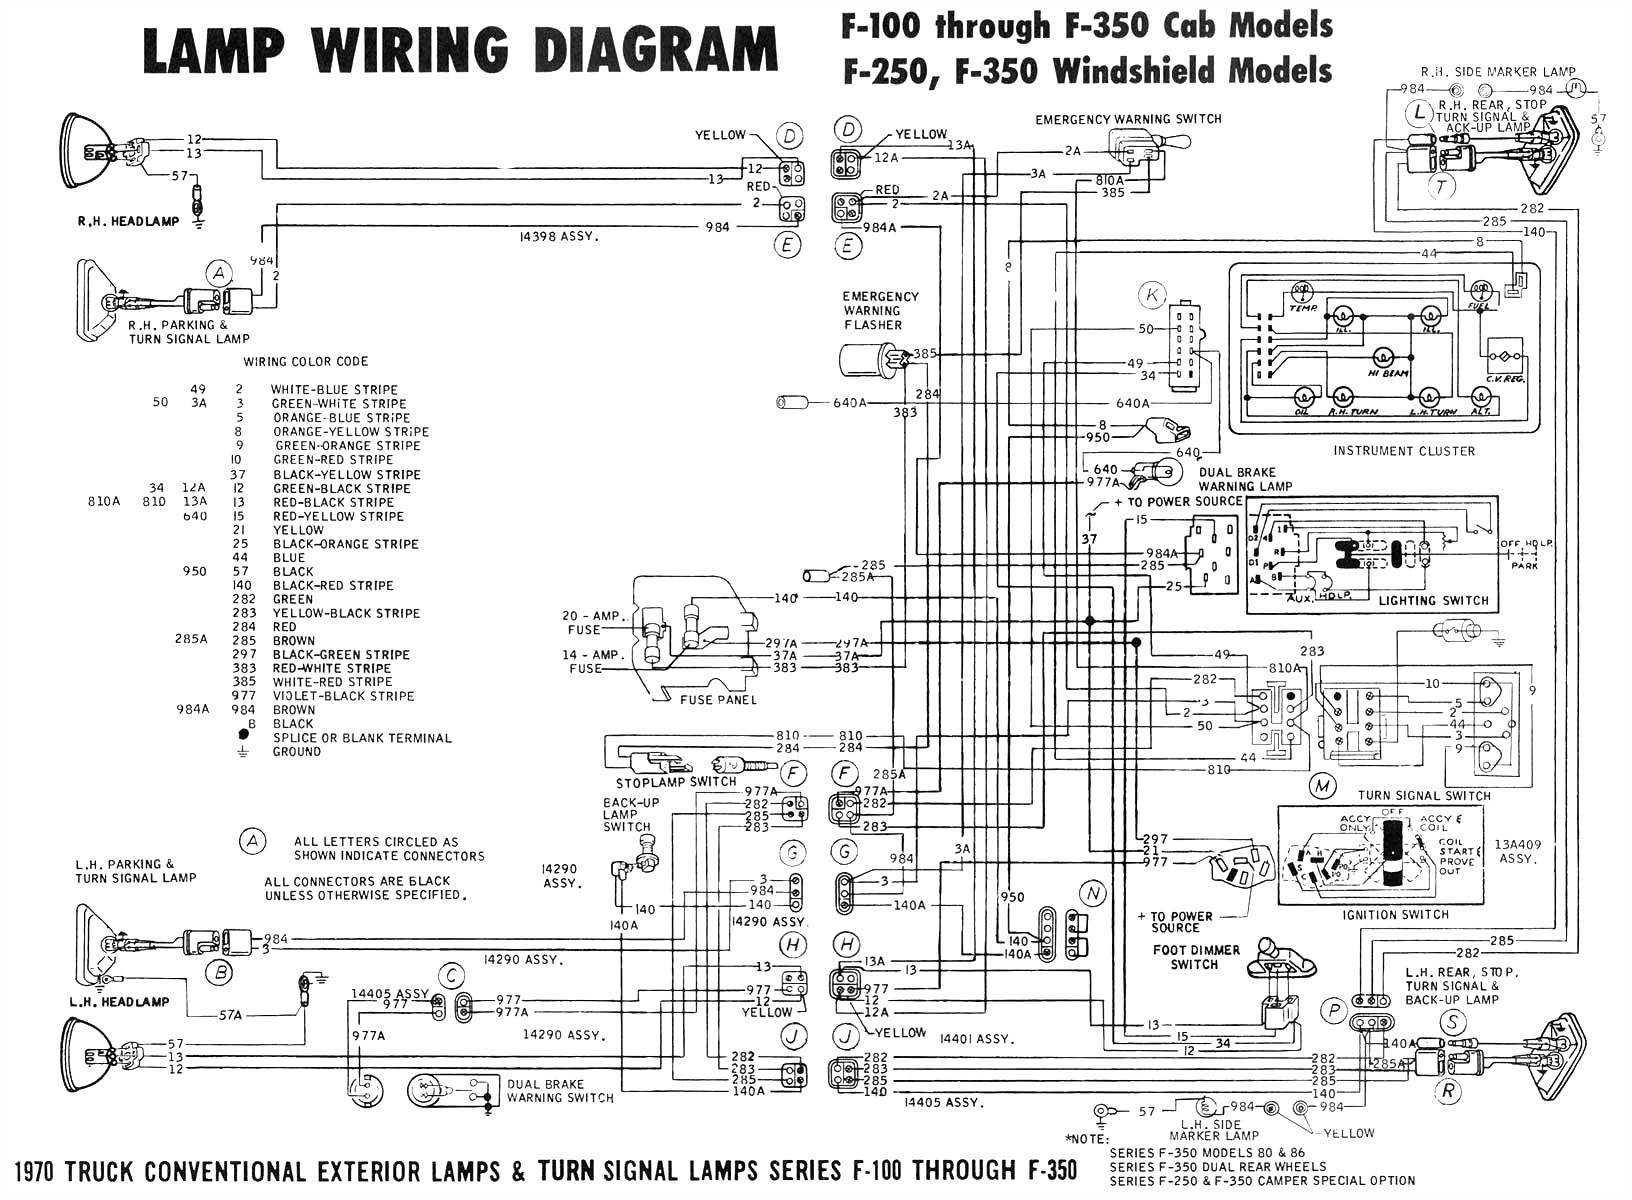 sv650 wiring diagram wiring diagram technic wiring diagram for 84 62 sel stick the 1947